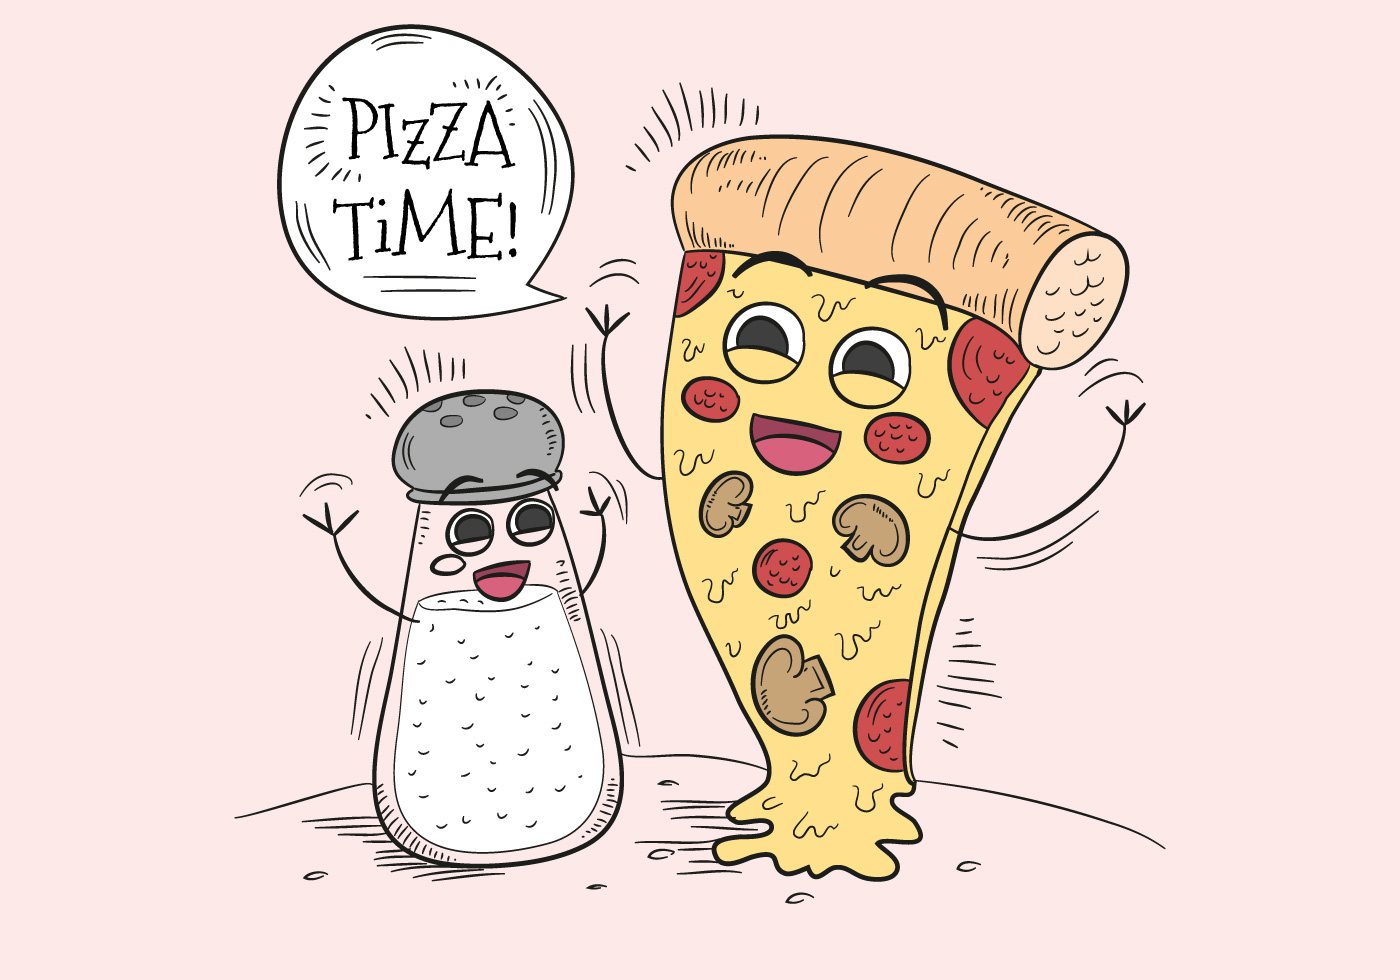 Funny Pizza And Salt Character for Pizza Time.